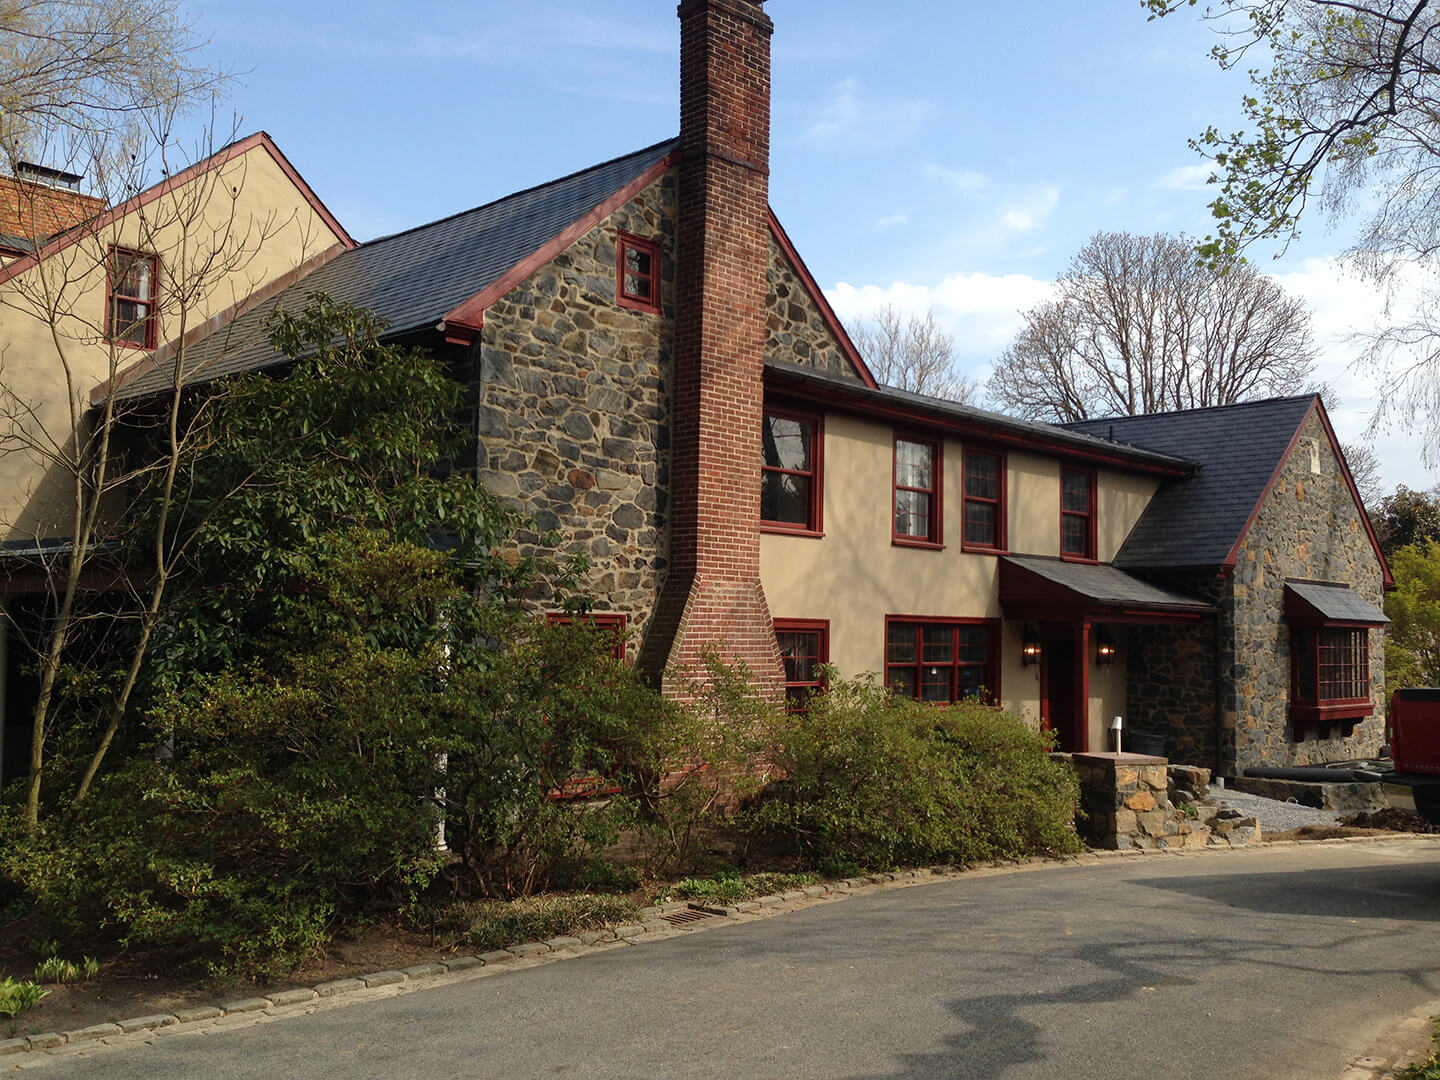 Historic Renovation with Stone, Brick, Stucco, & Mahogany Trim